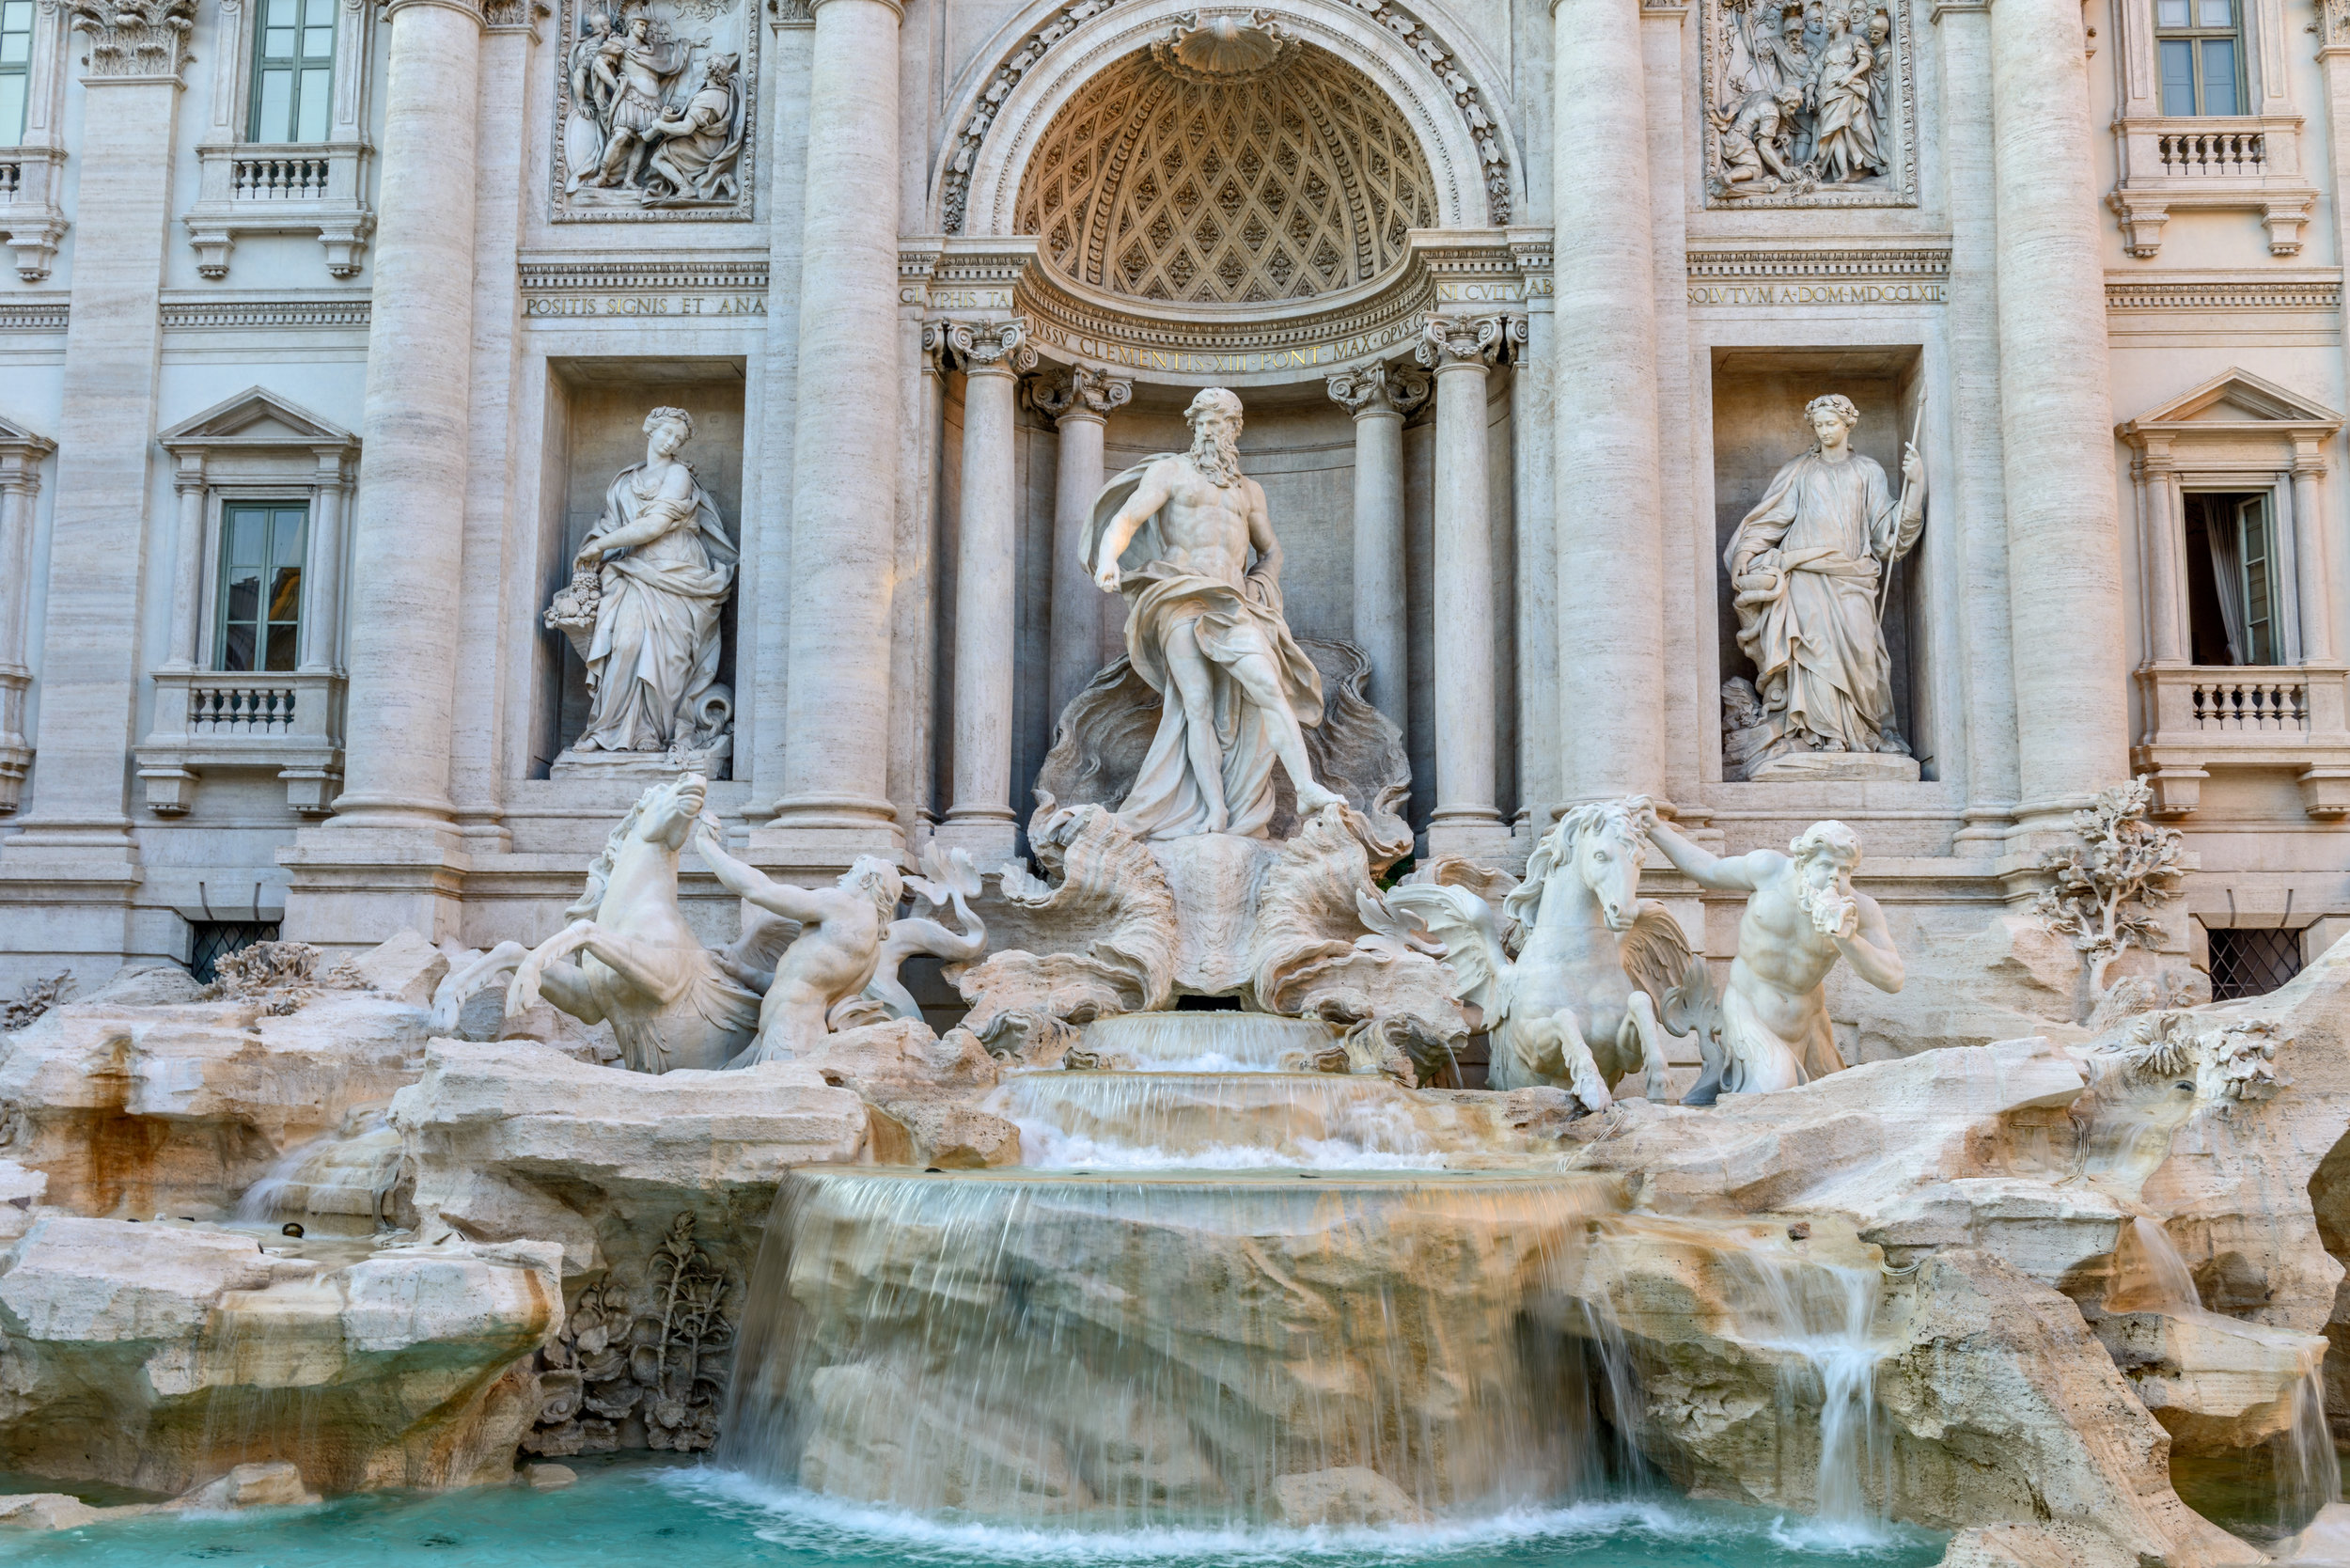 """Trevi Fountain - """"Hey now, Hey now this is what dreams are made of"""" Roma, Italy"""